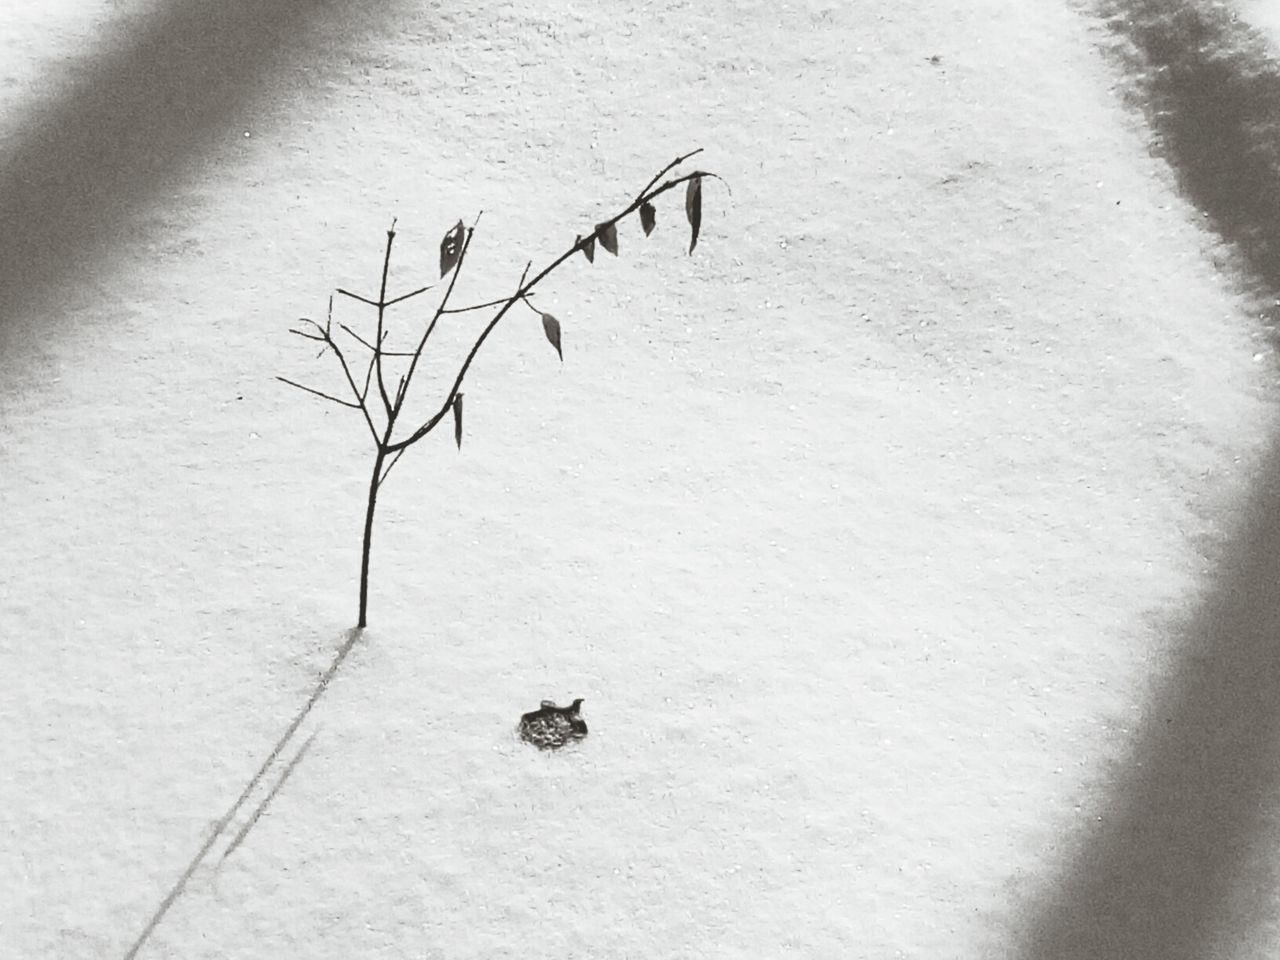 Nature Sand Plant No People Tranquility Close-up Day Outdoors Beauty In Nature Sunlight Bare Tree Frozen Blackandwhite Black & White EyeEm Nature Lover Nature_collection The Great Outdoors - 2016 EyeEm Awards Plant Sky Landscape Tree Trunk Beauty In Nature Cold Temperature Winter Snow